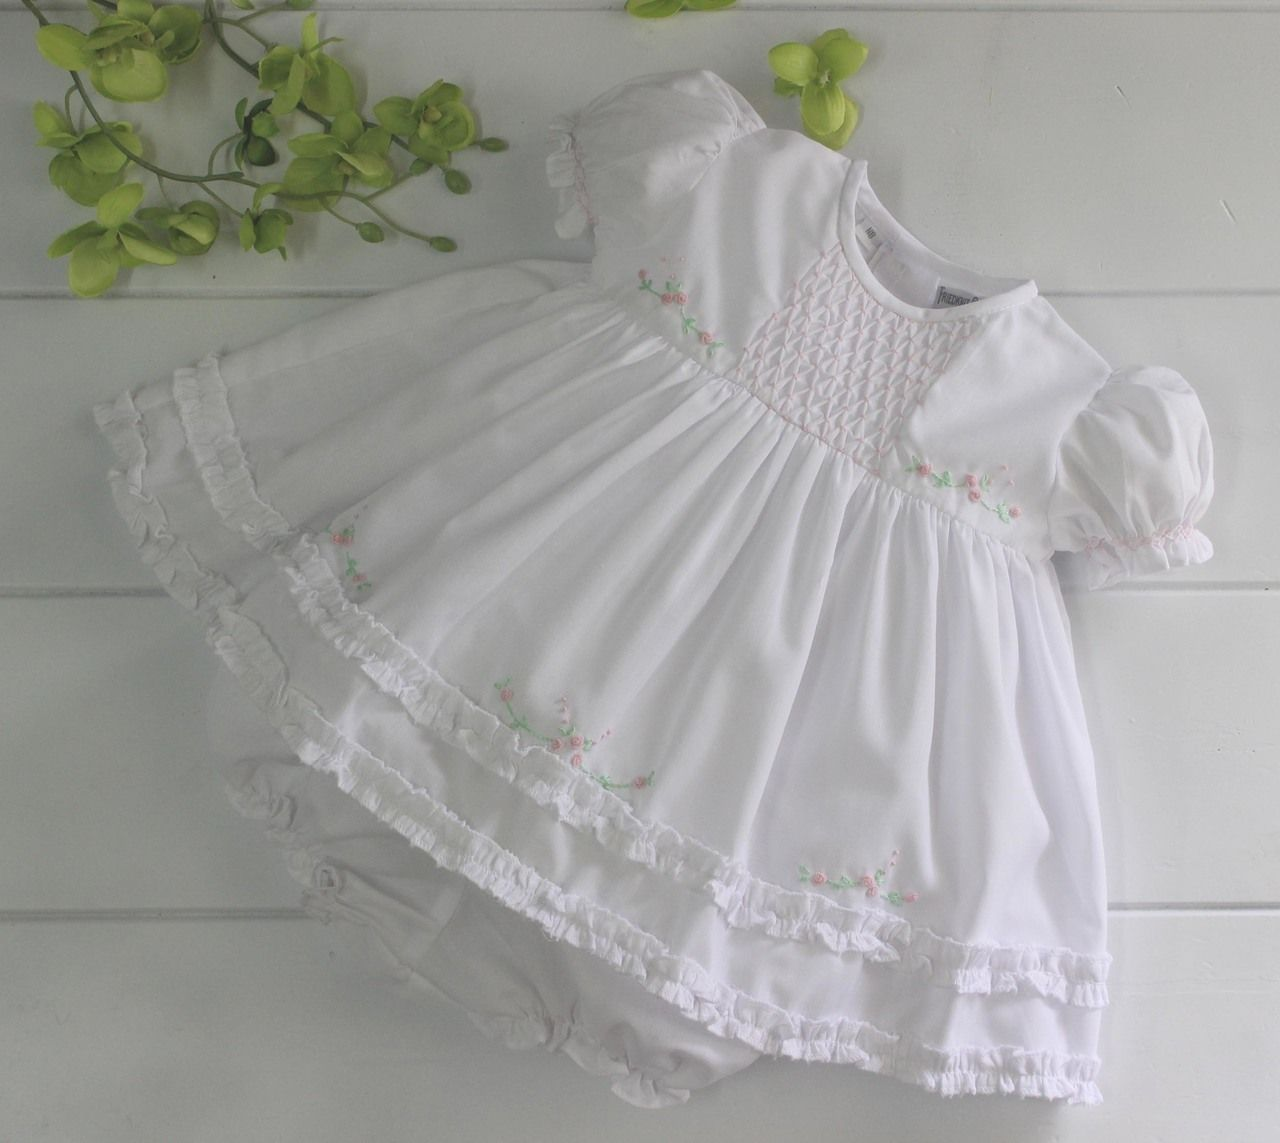 Girls White Heirloom Dress With Ruffles And Pink Flowers 41 00 Https Www Hiccupschildren Smocked Baby Girl Dresses Girls Smocked Dresses Girls White Dress [ 1143 x 1280 Pixel ]